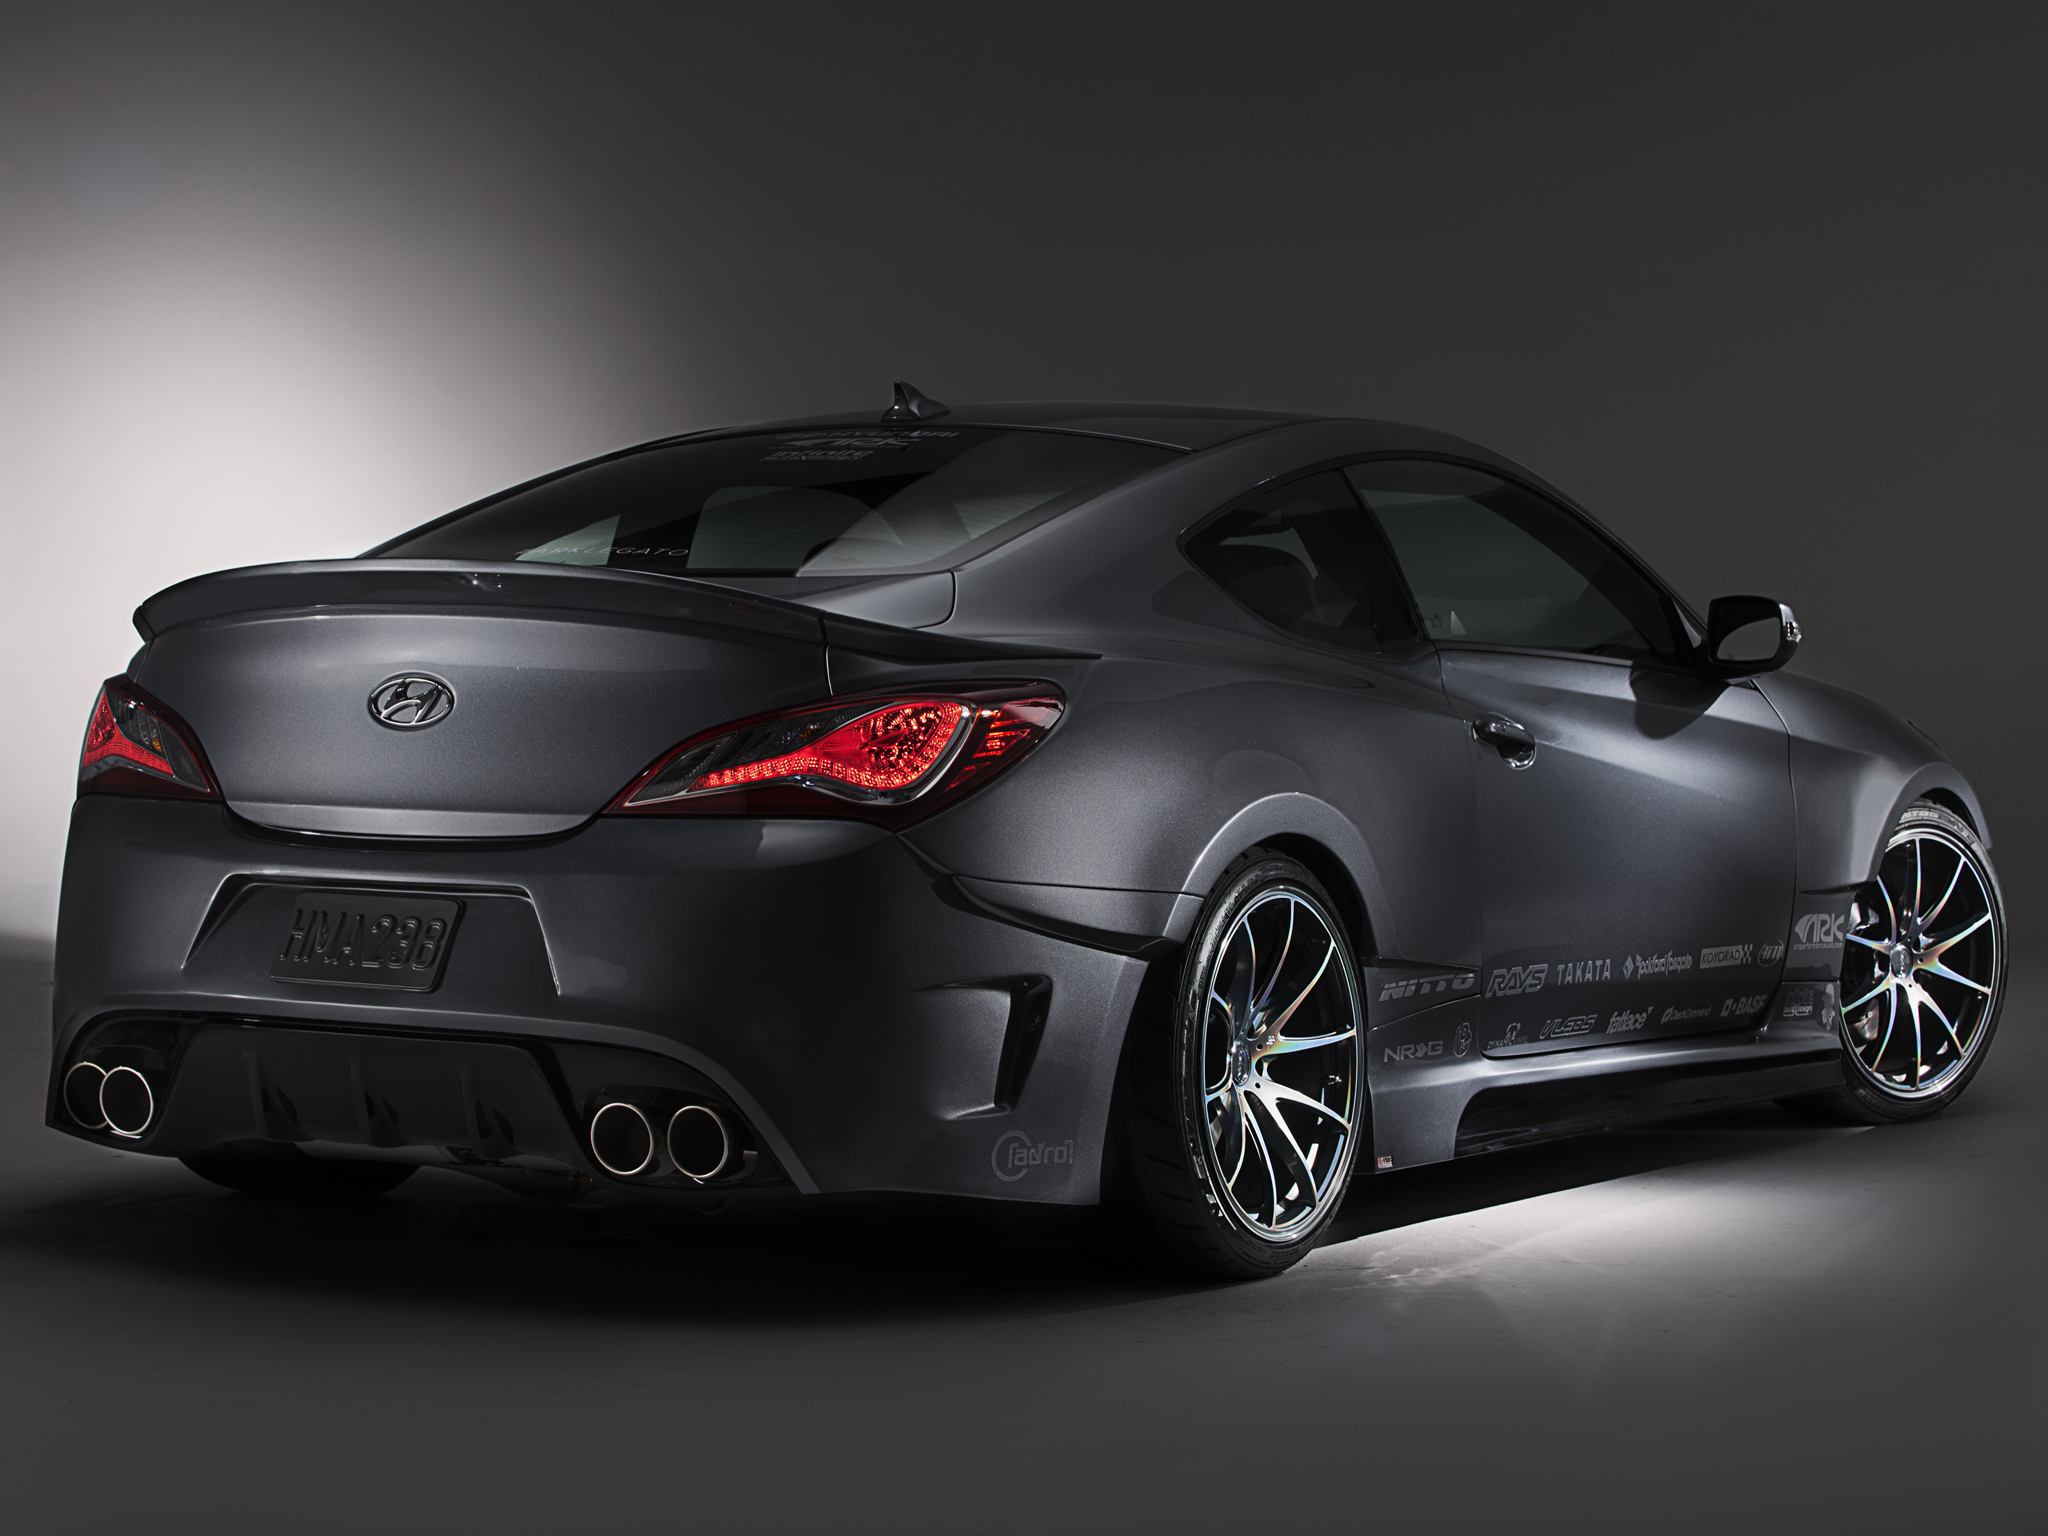 2013 ark performance hyundai genesis coupe legato tuning h. Black Bedroom Furniture Sets. Home Design Ideas